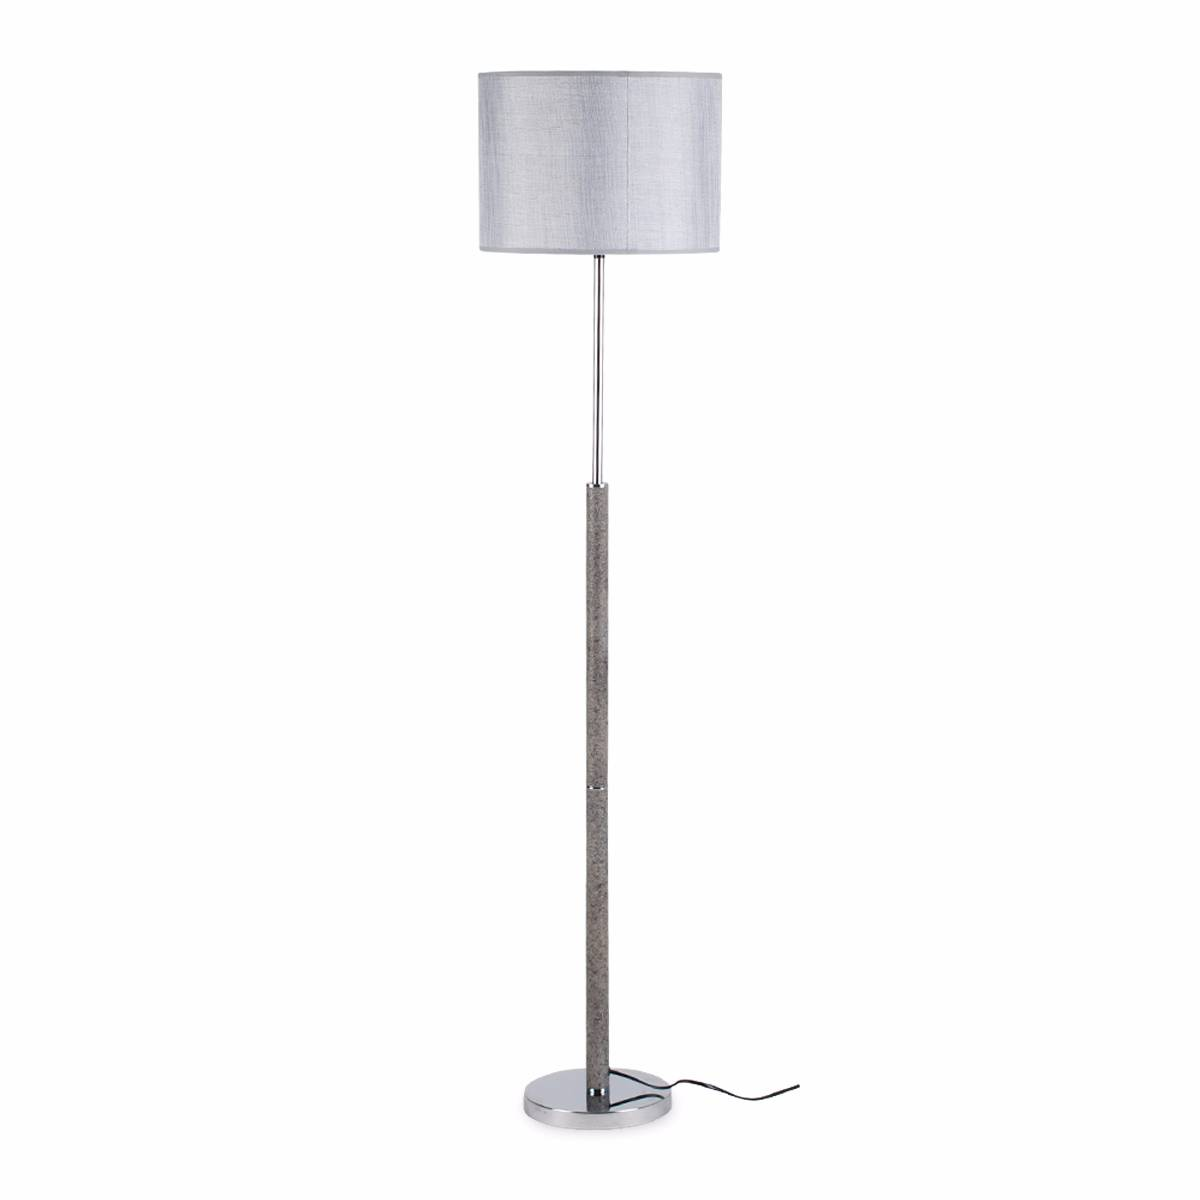 Lampu Lantai Floor Lamp Grey Fabric Shade